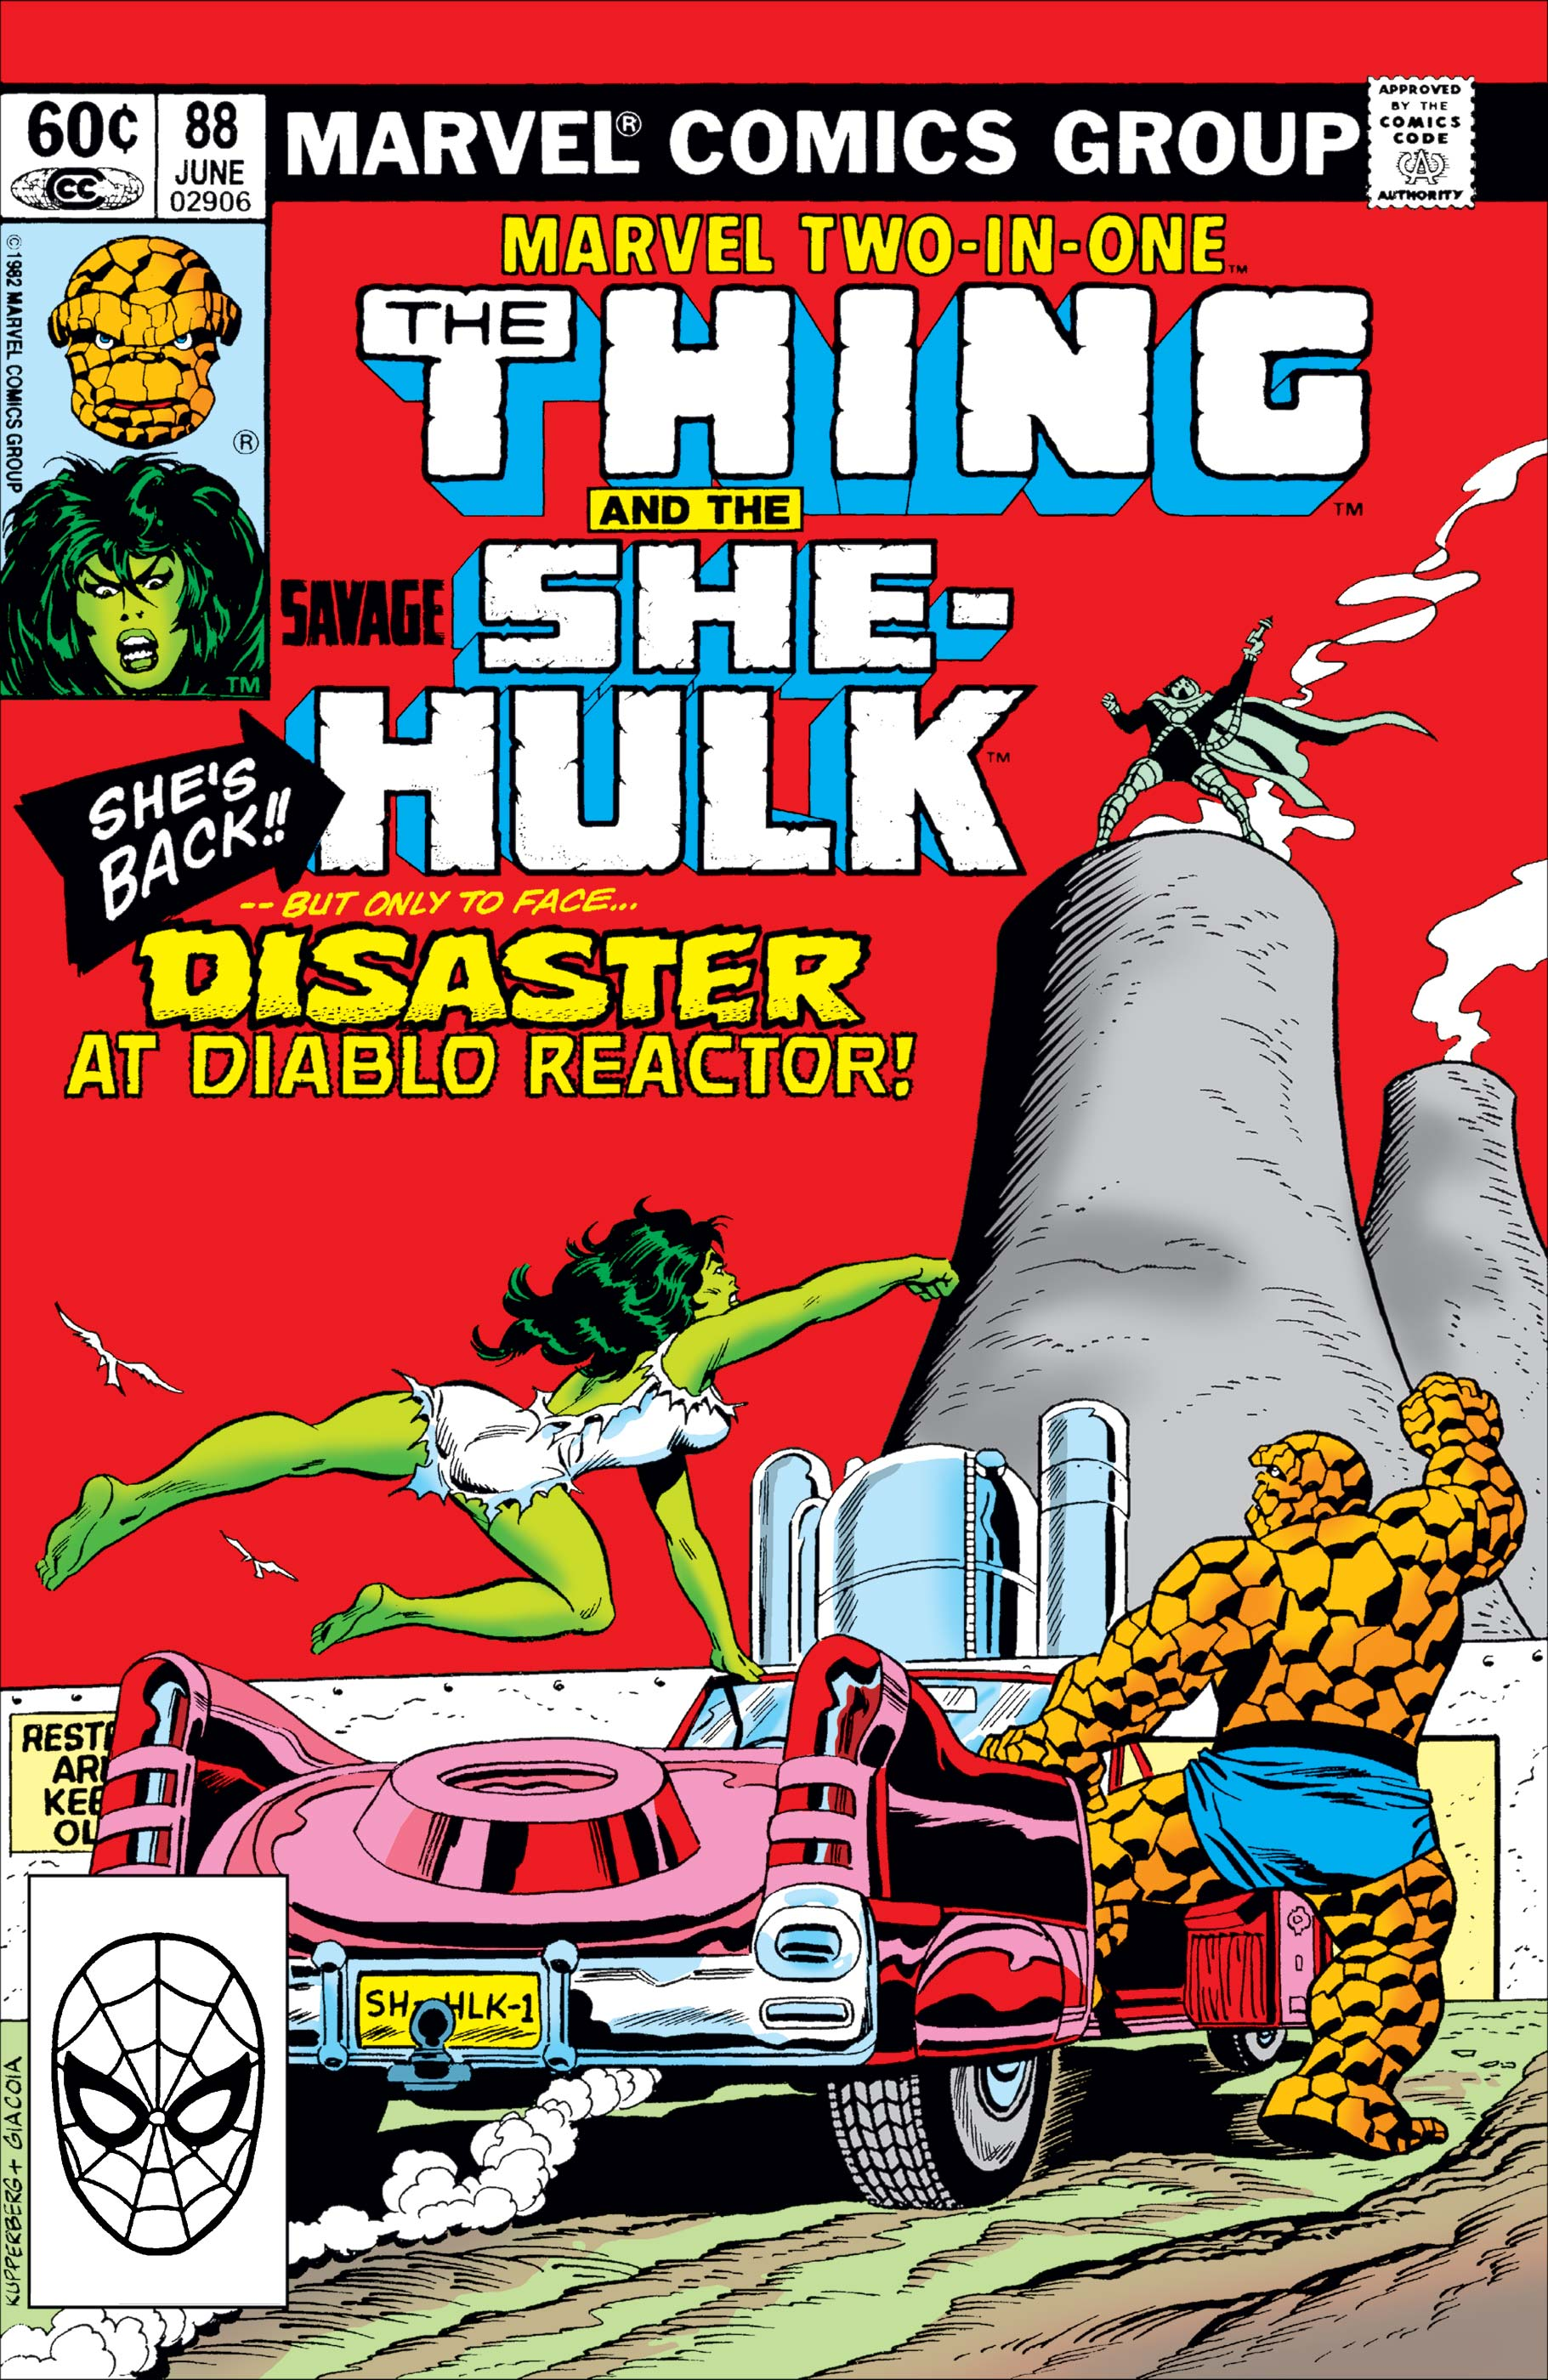 Marvel Two-in-One (1974) #88